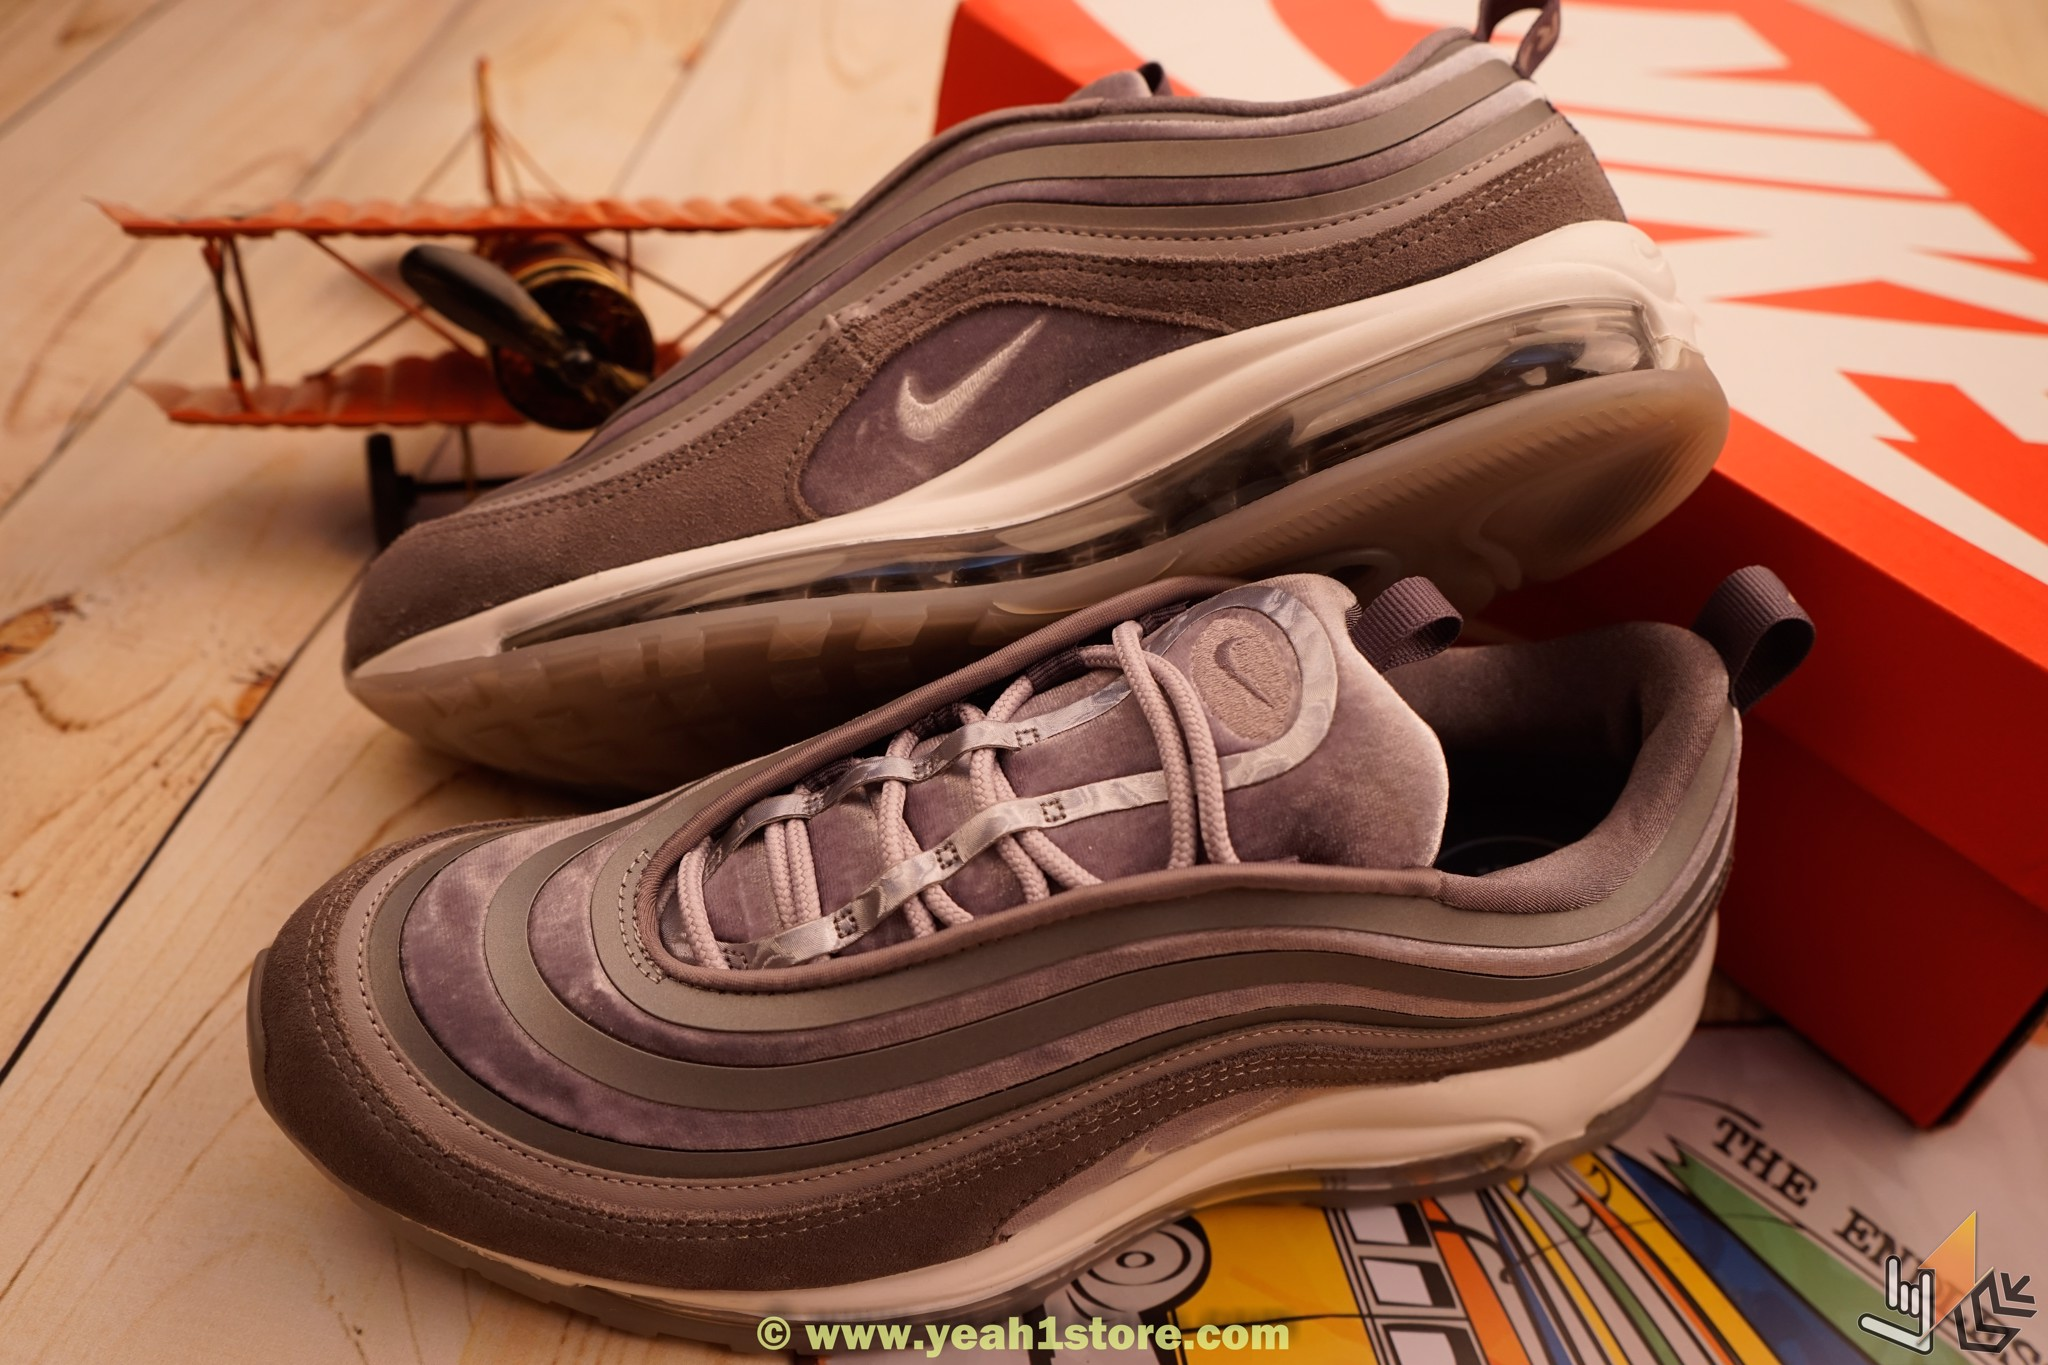 reputable site 7522c d605e NIKÉ AIR MAX 97 GREY